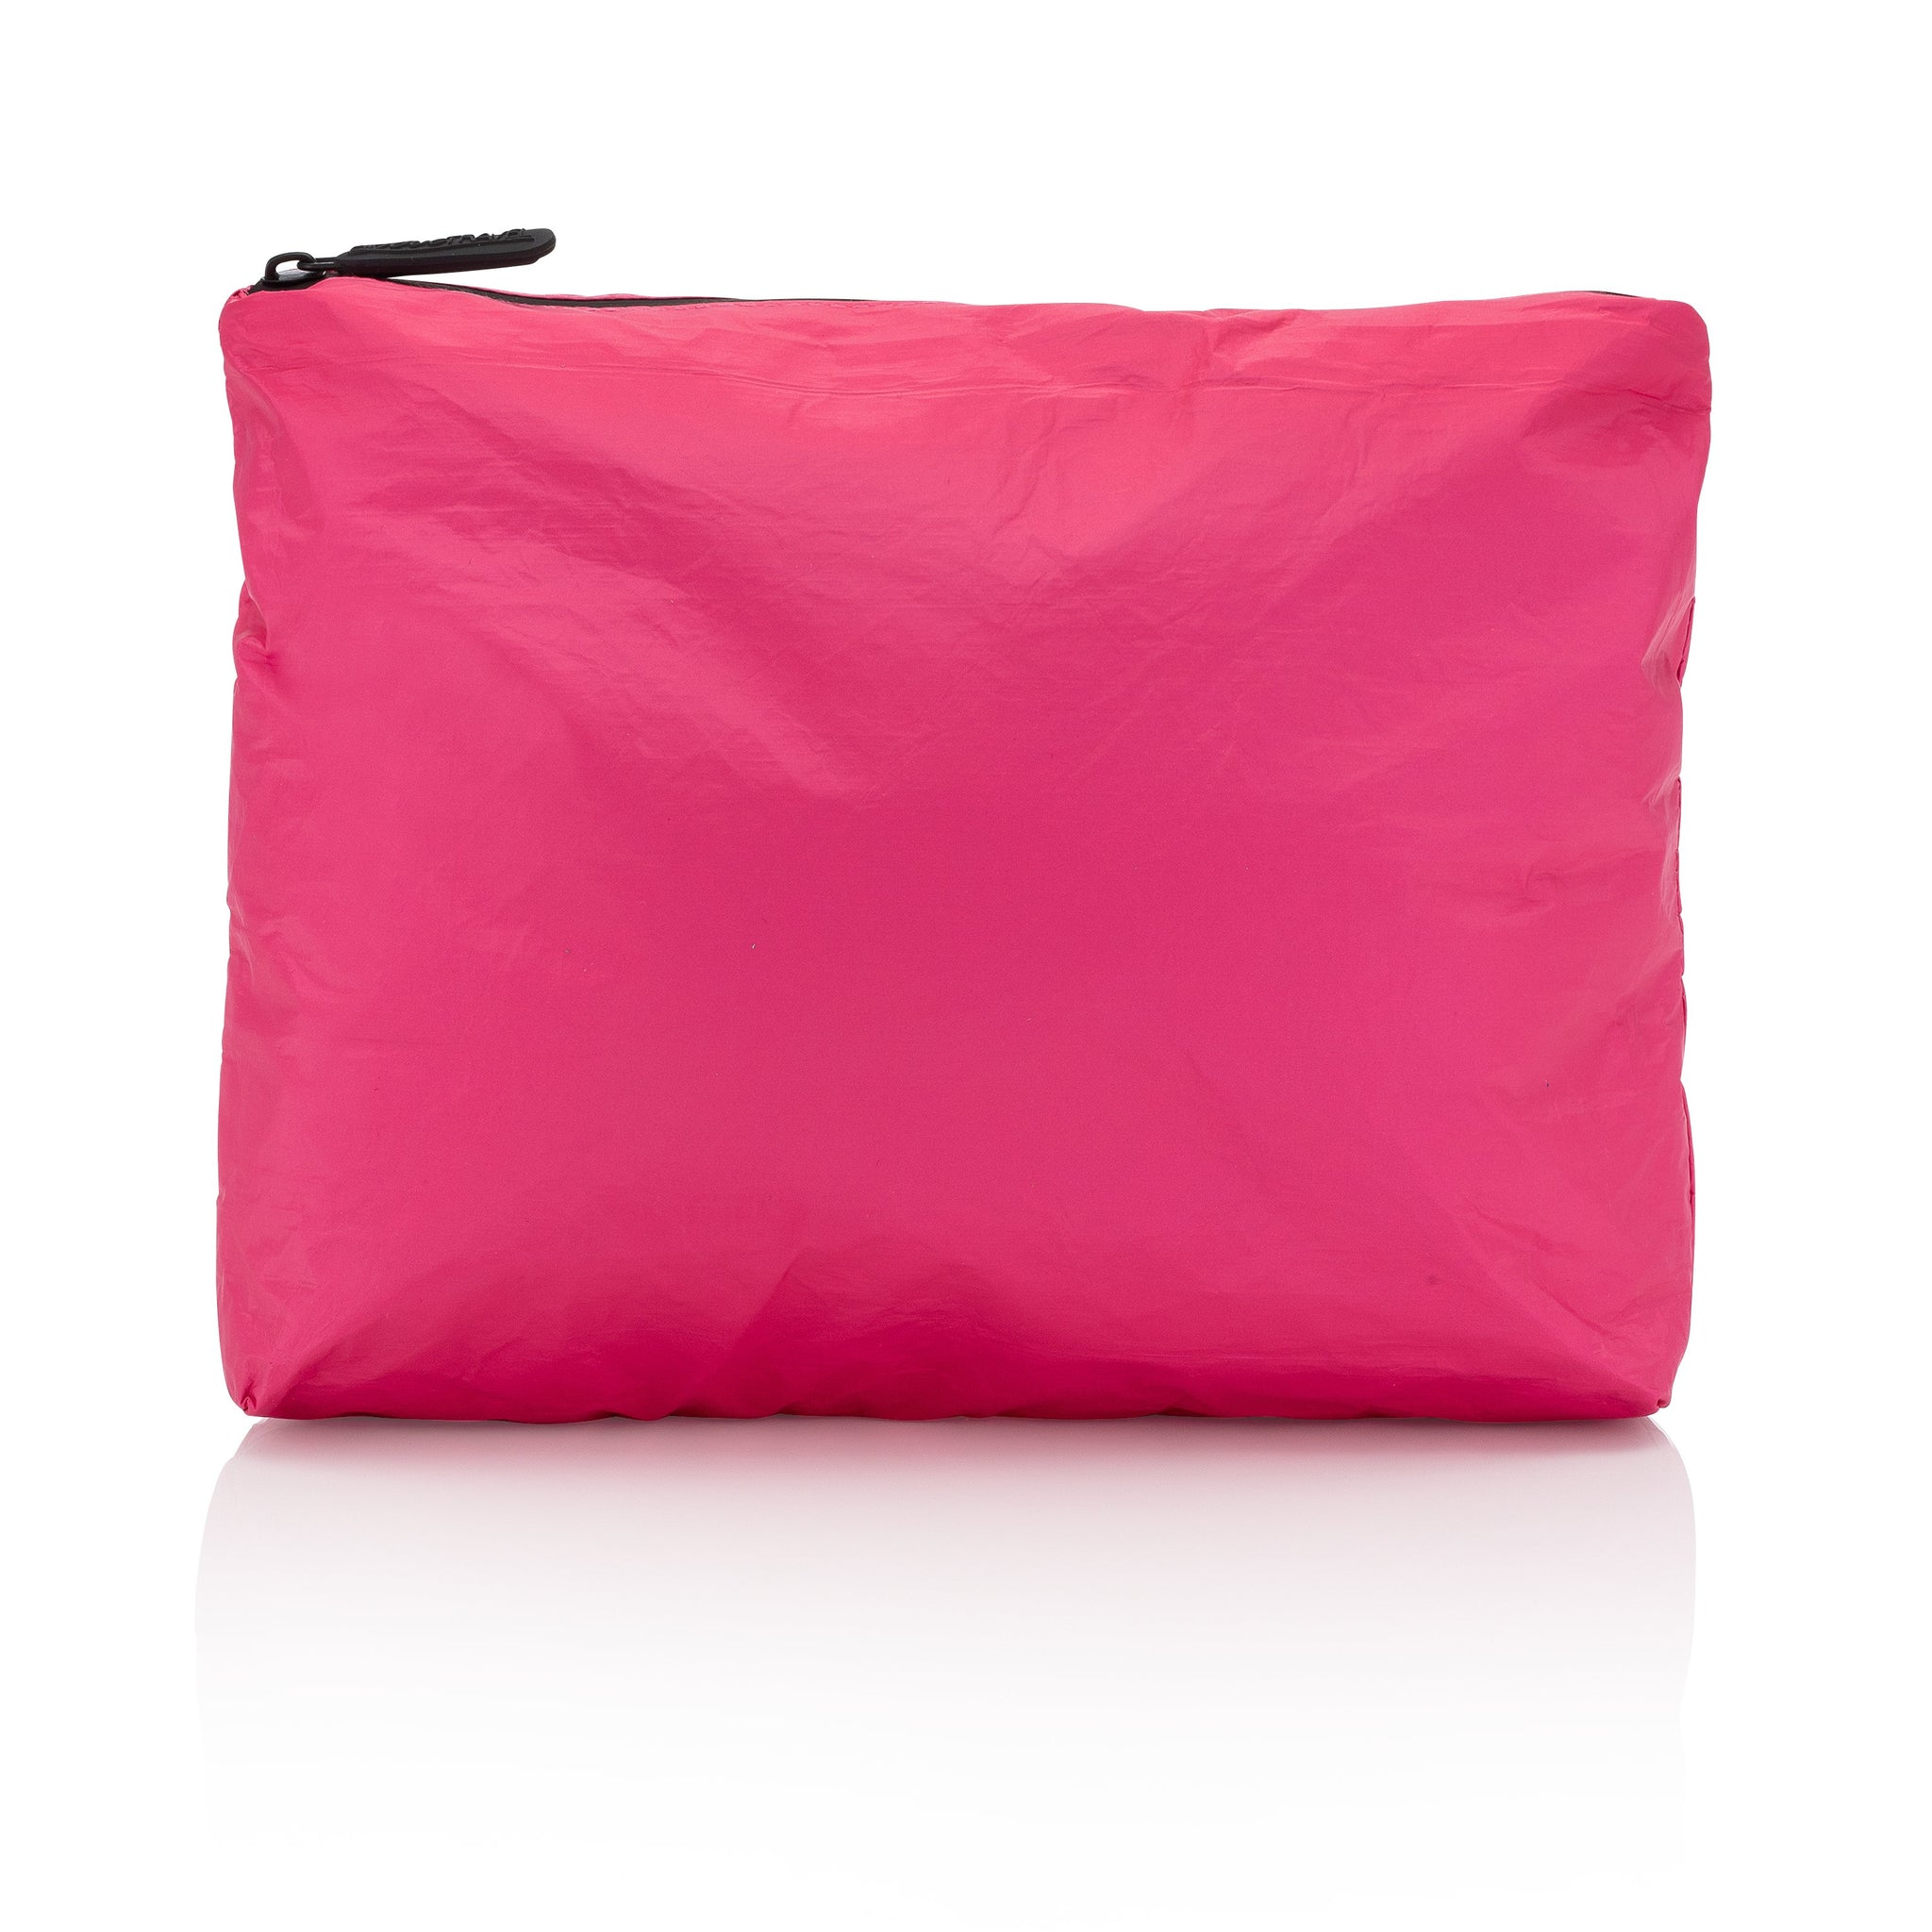 Medium Pack - Pink Peacock